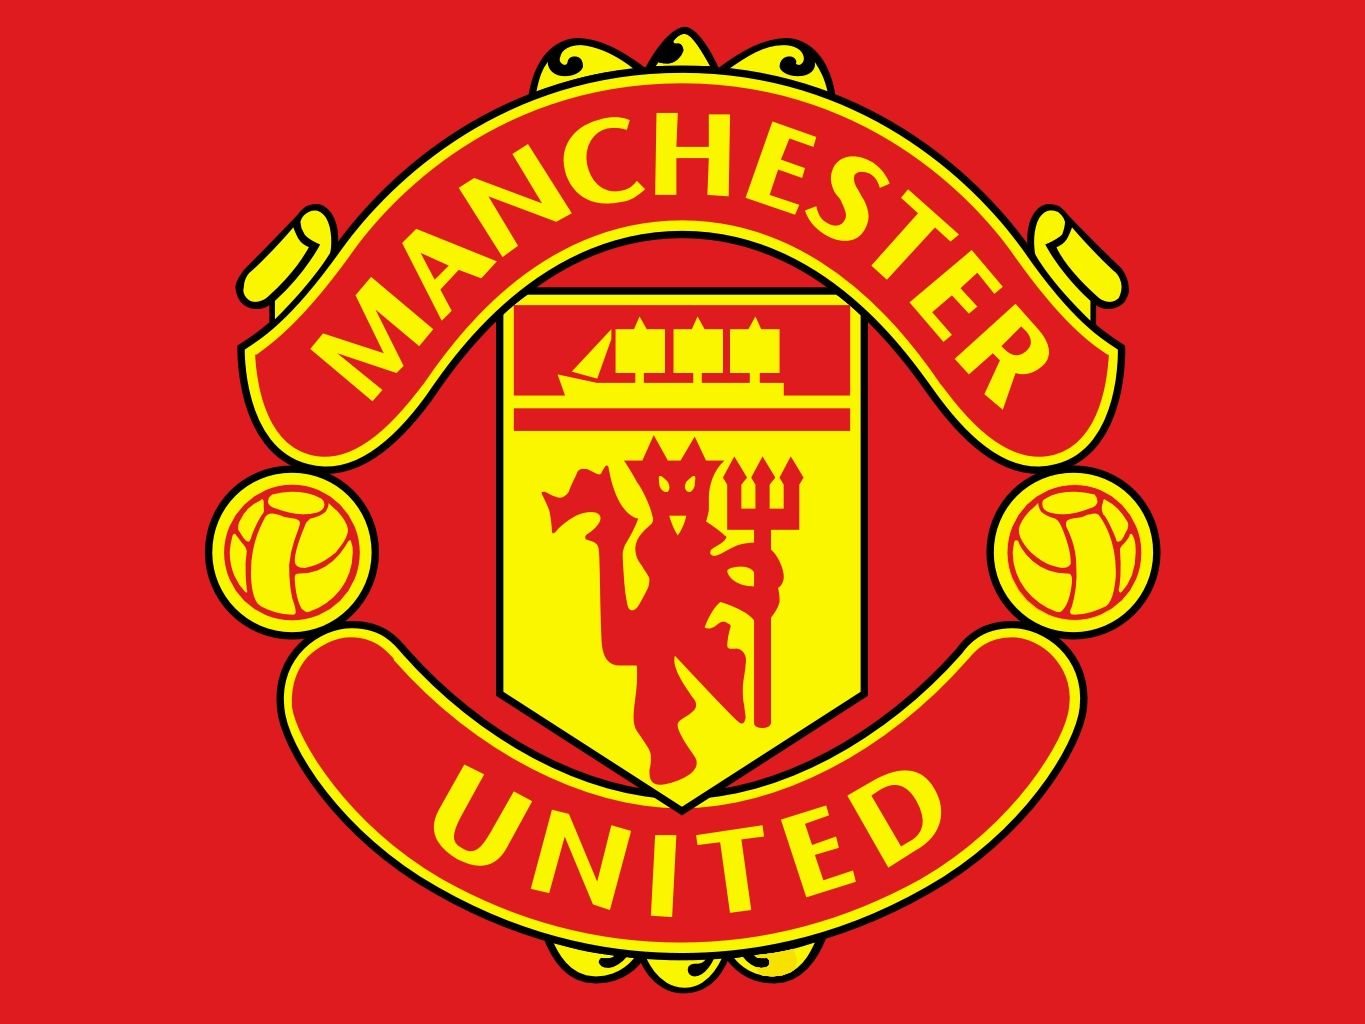 Color of the Manchester United Logo | Manchester united logo, Manchester united, Manchester united football club